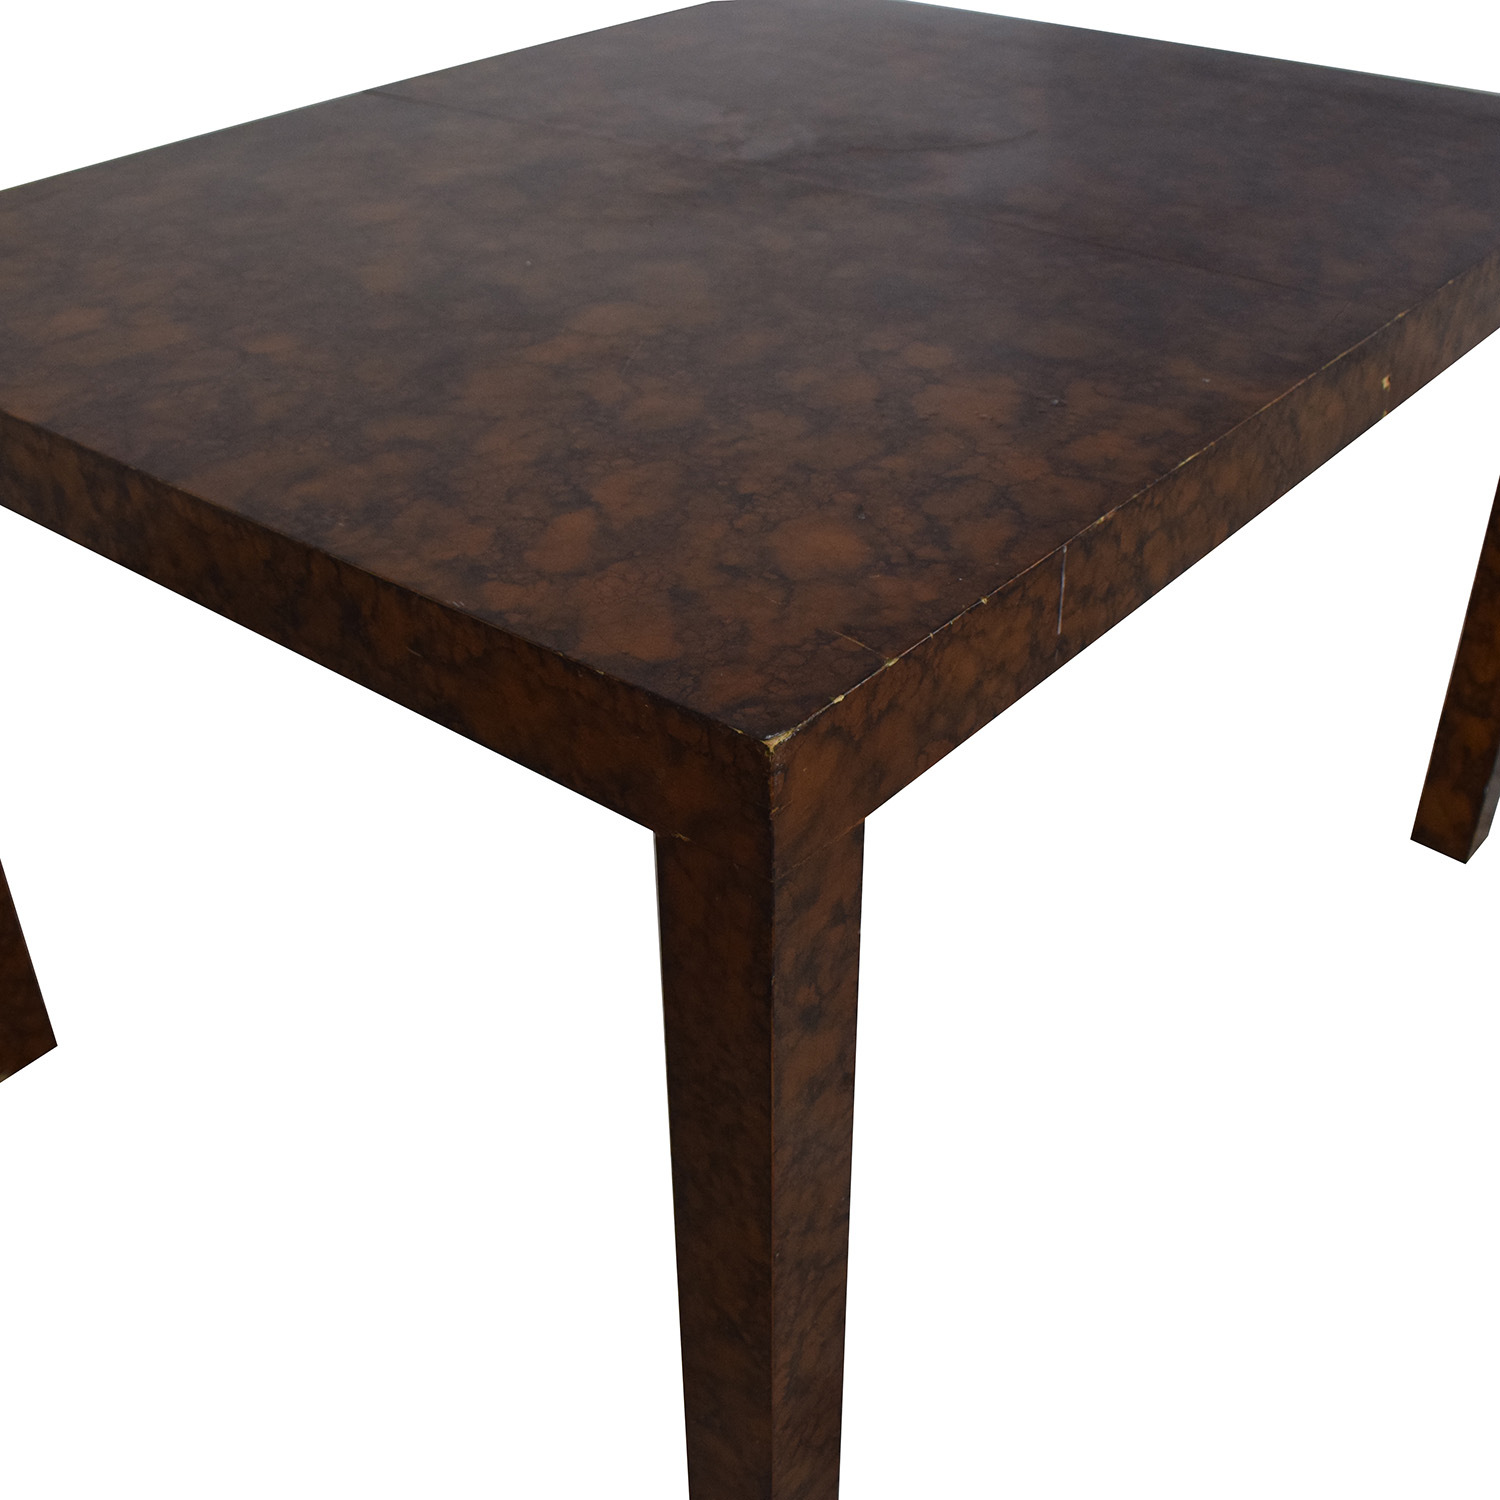 Directional Furniture Directional Furniture Milo Baughman Burl Parsons Dining Table